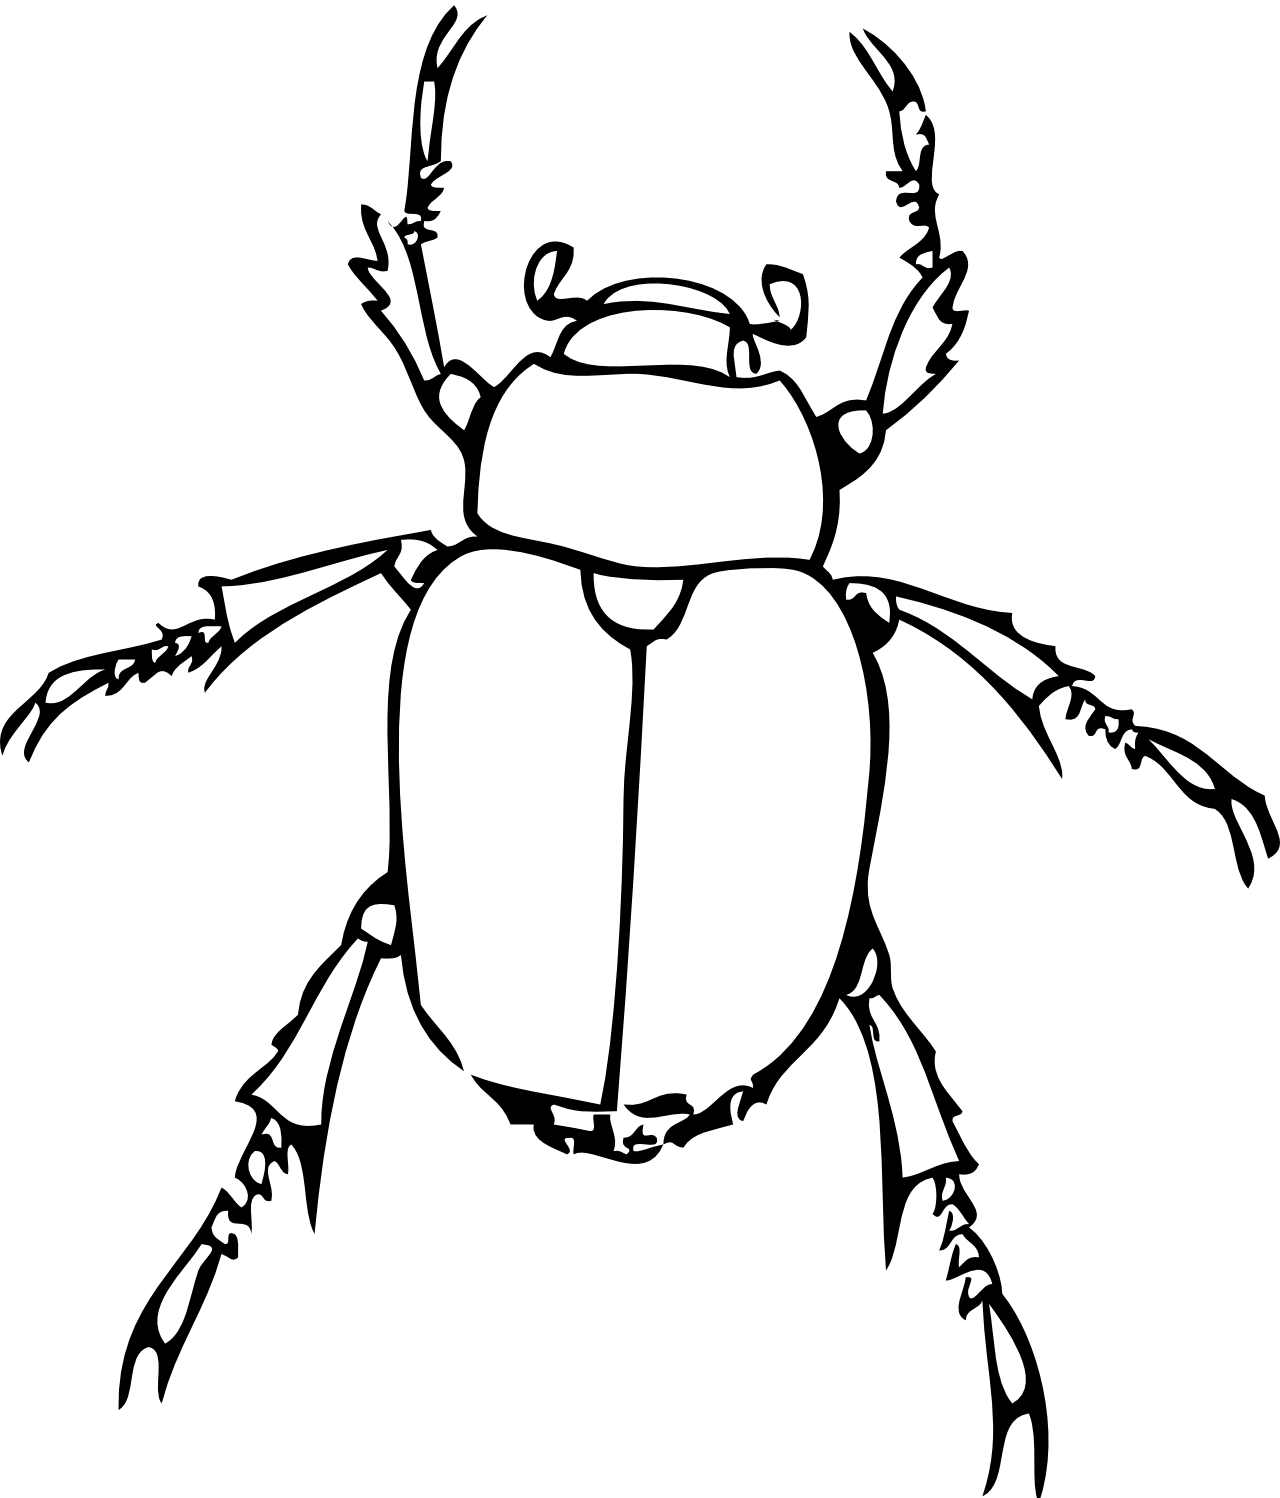 Beetle panda free images. Pain clipart black and white